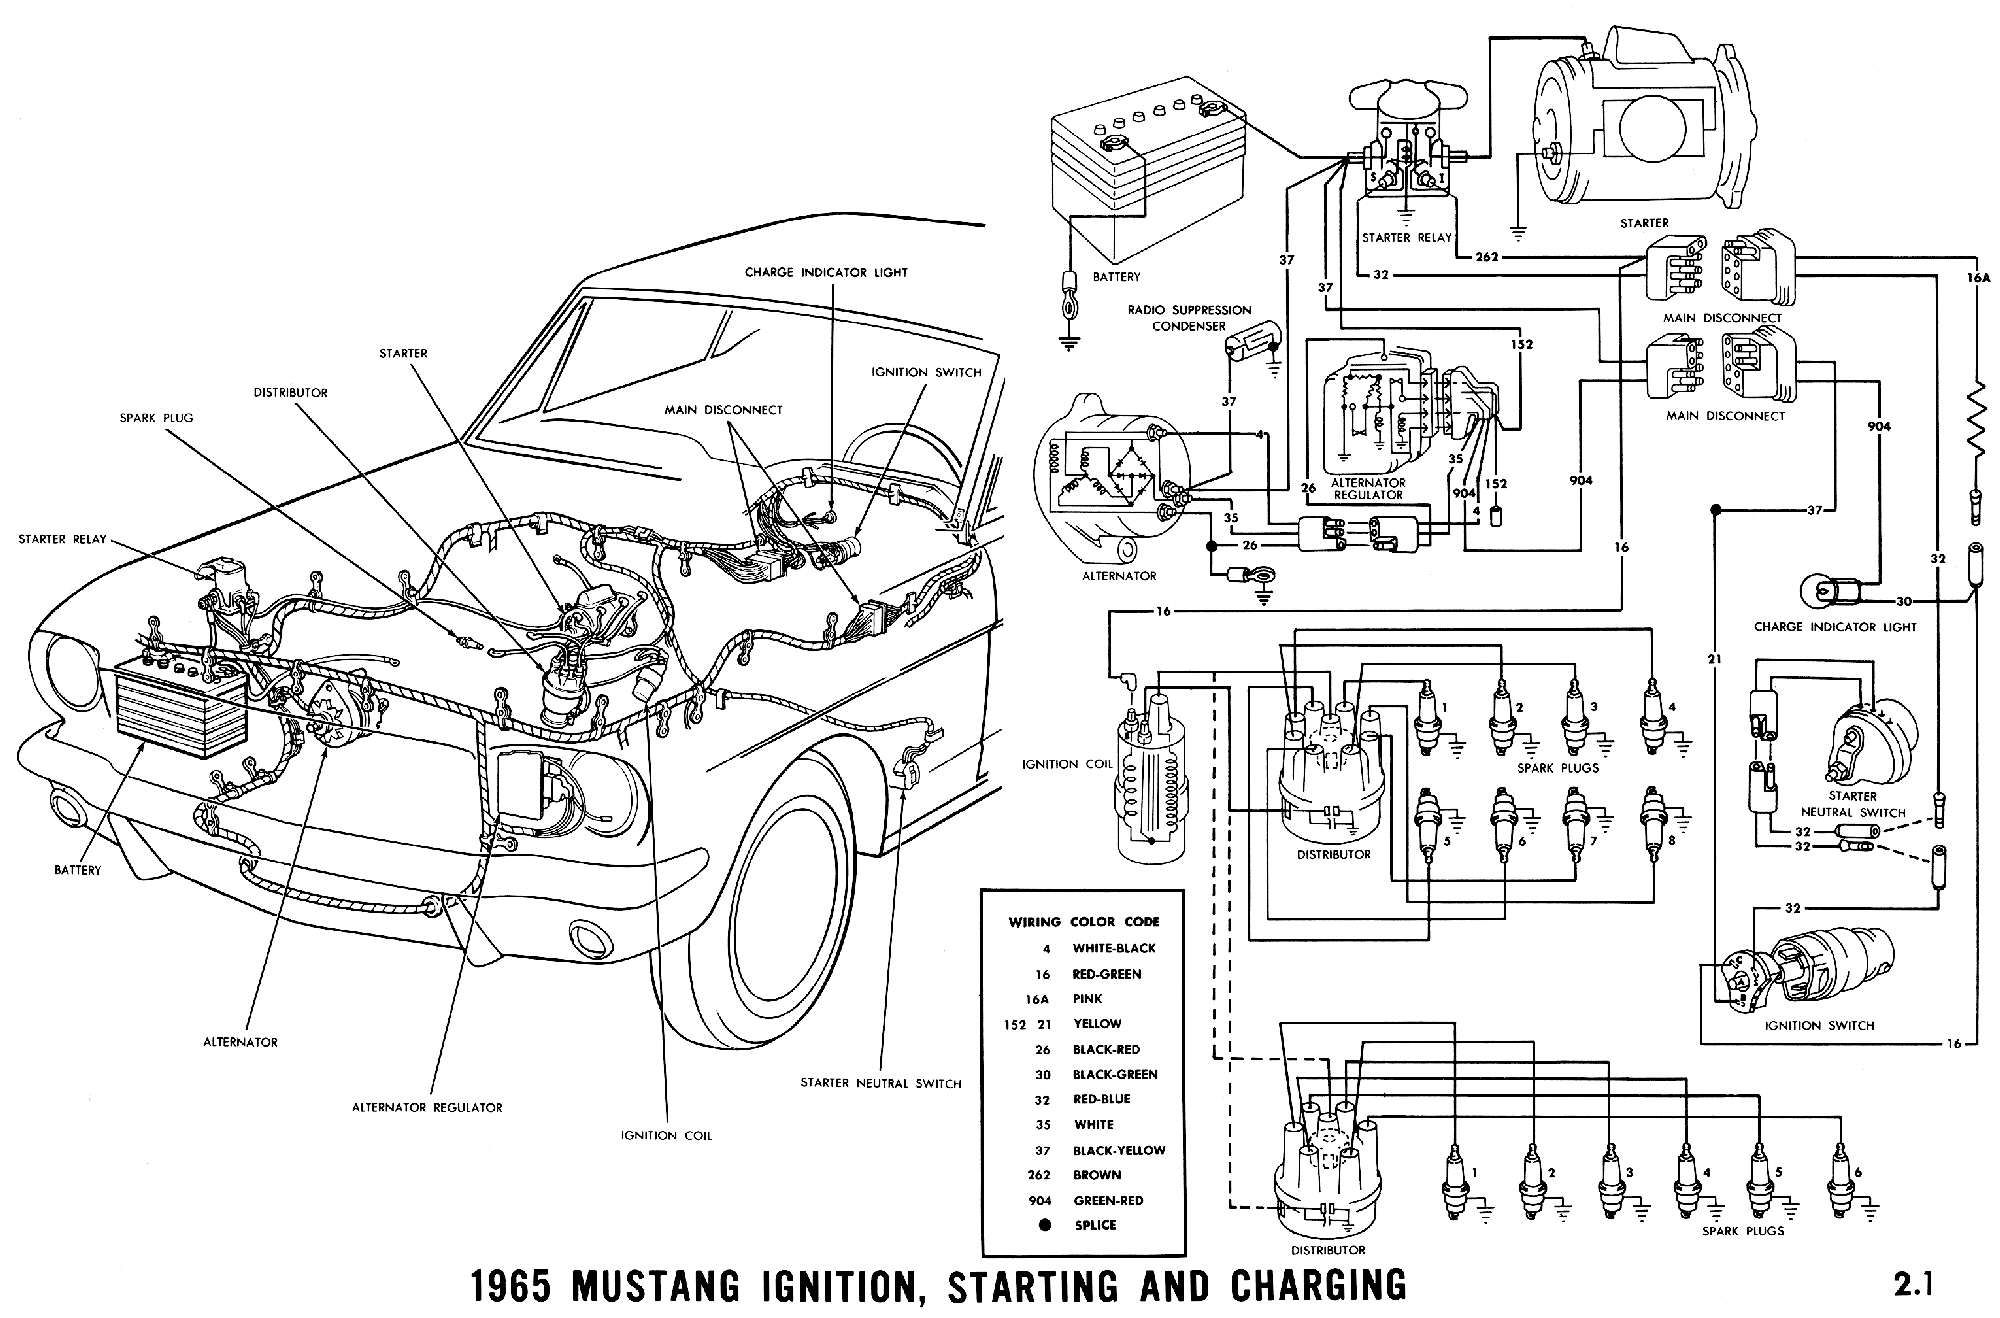 1966 mustang wiring diagrams average joe restoration everything rh newsnanalysis co